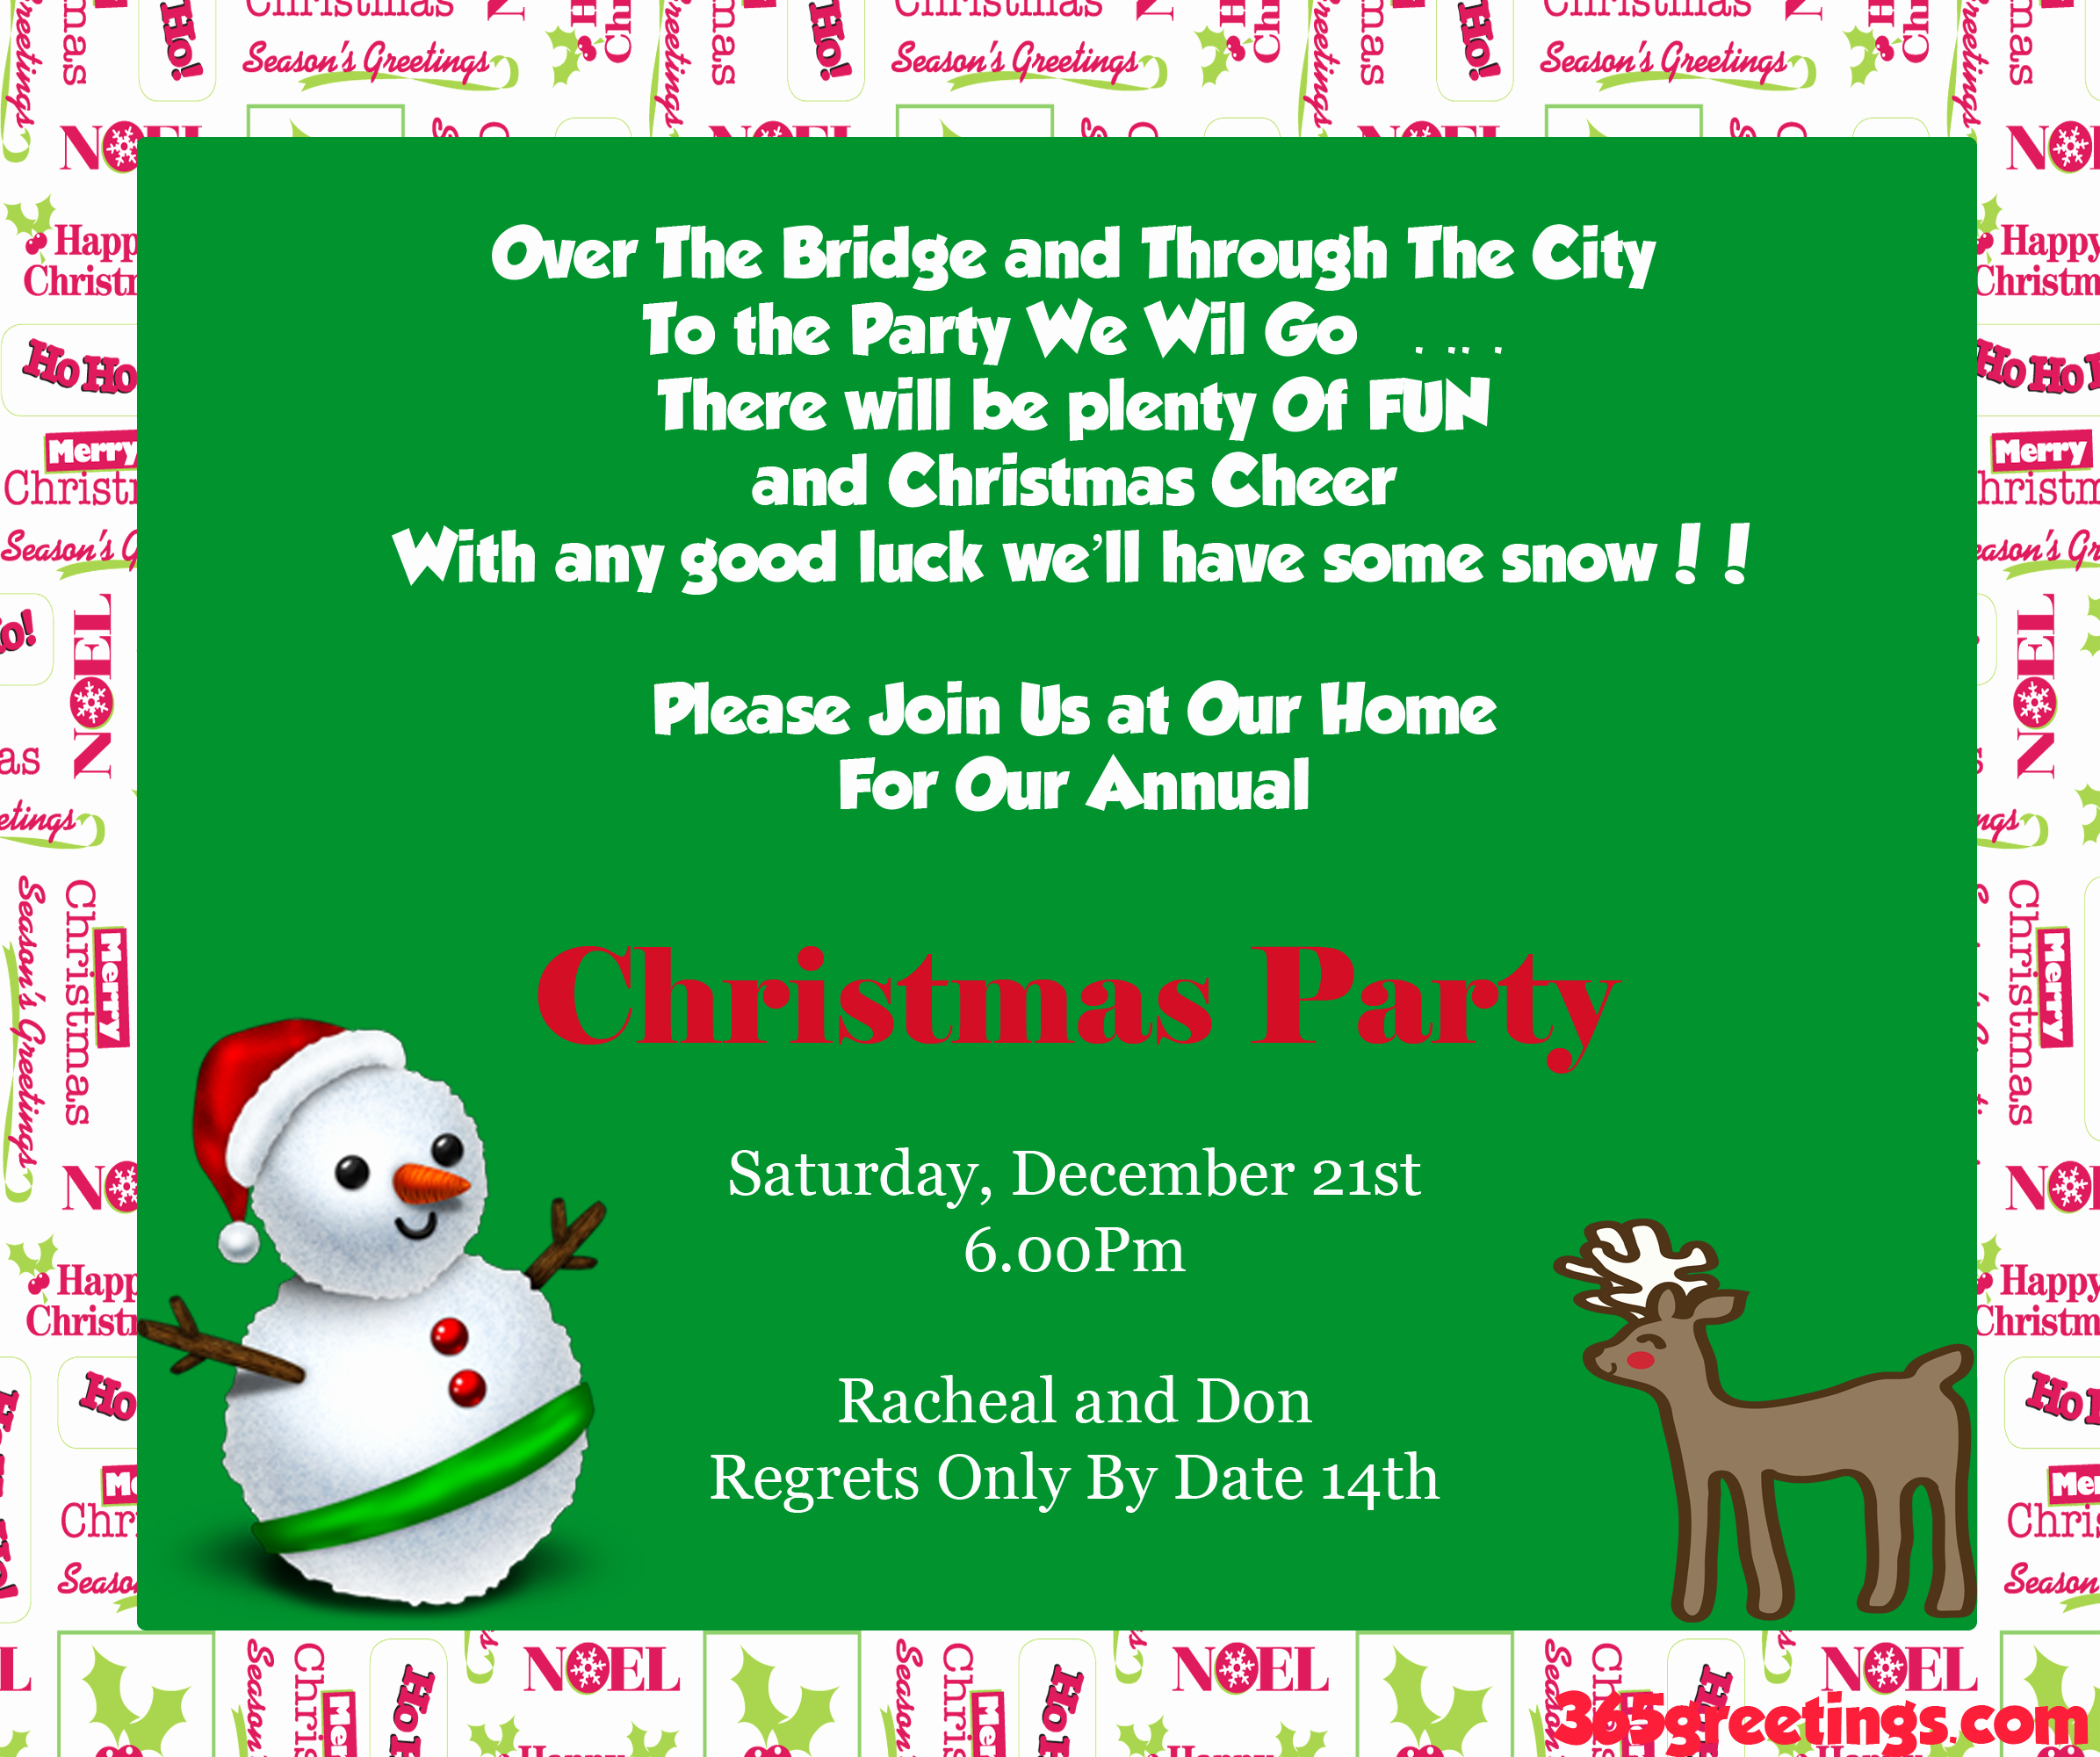 Sample Of Christmas Party Invitation Luxury Christmas Party Invitation Ideas Christmas Celebration